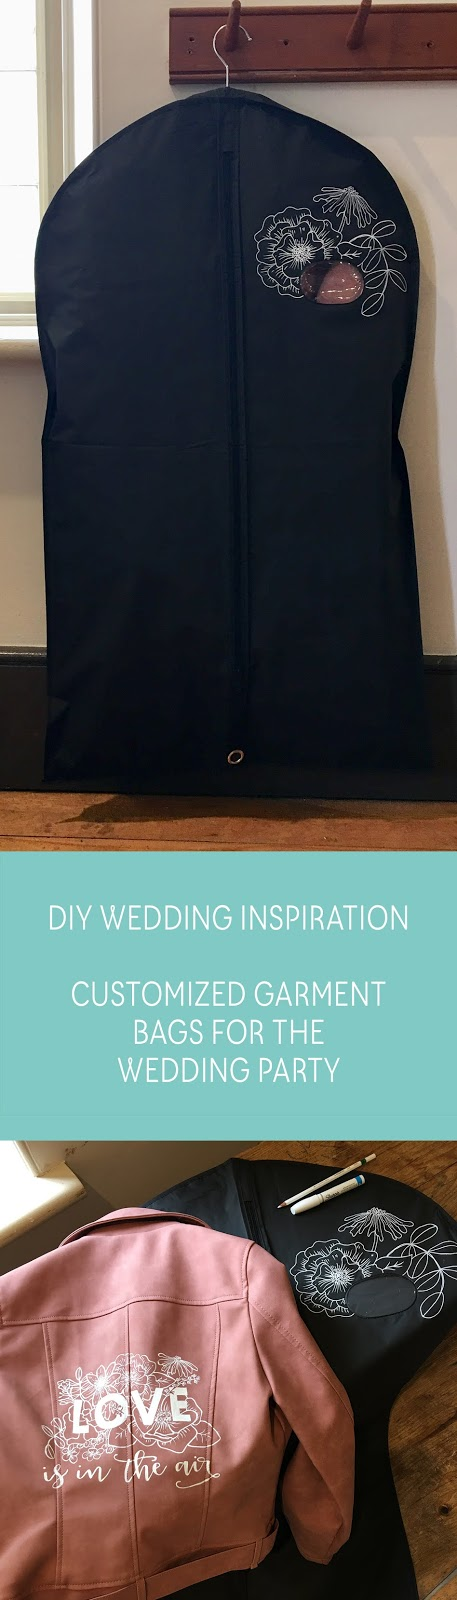 Creative DIY Inspiration - how to customize garment bags for your wedding party | Creative Bag